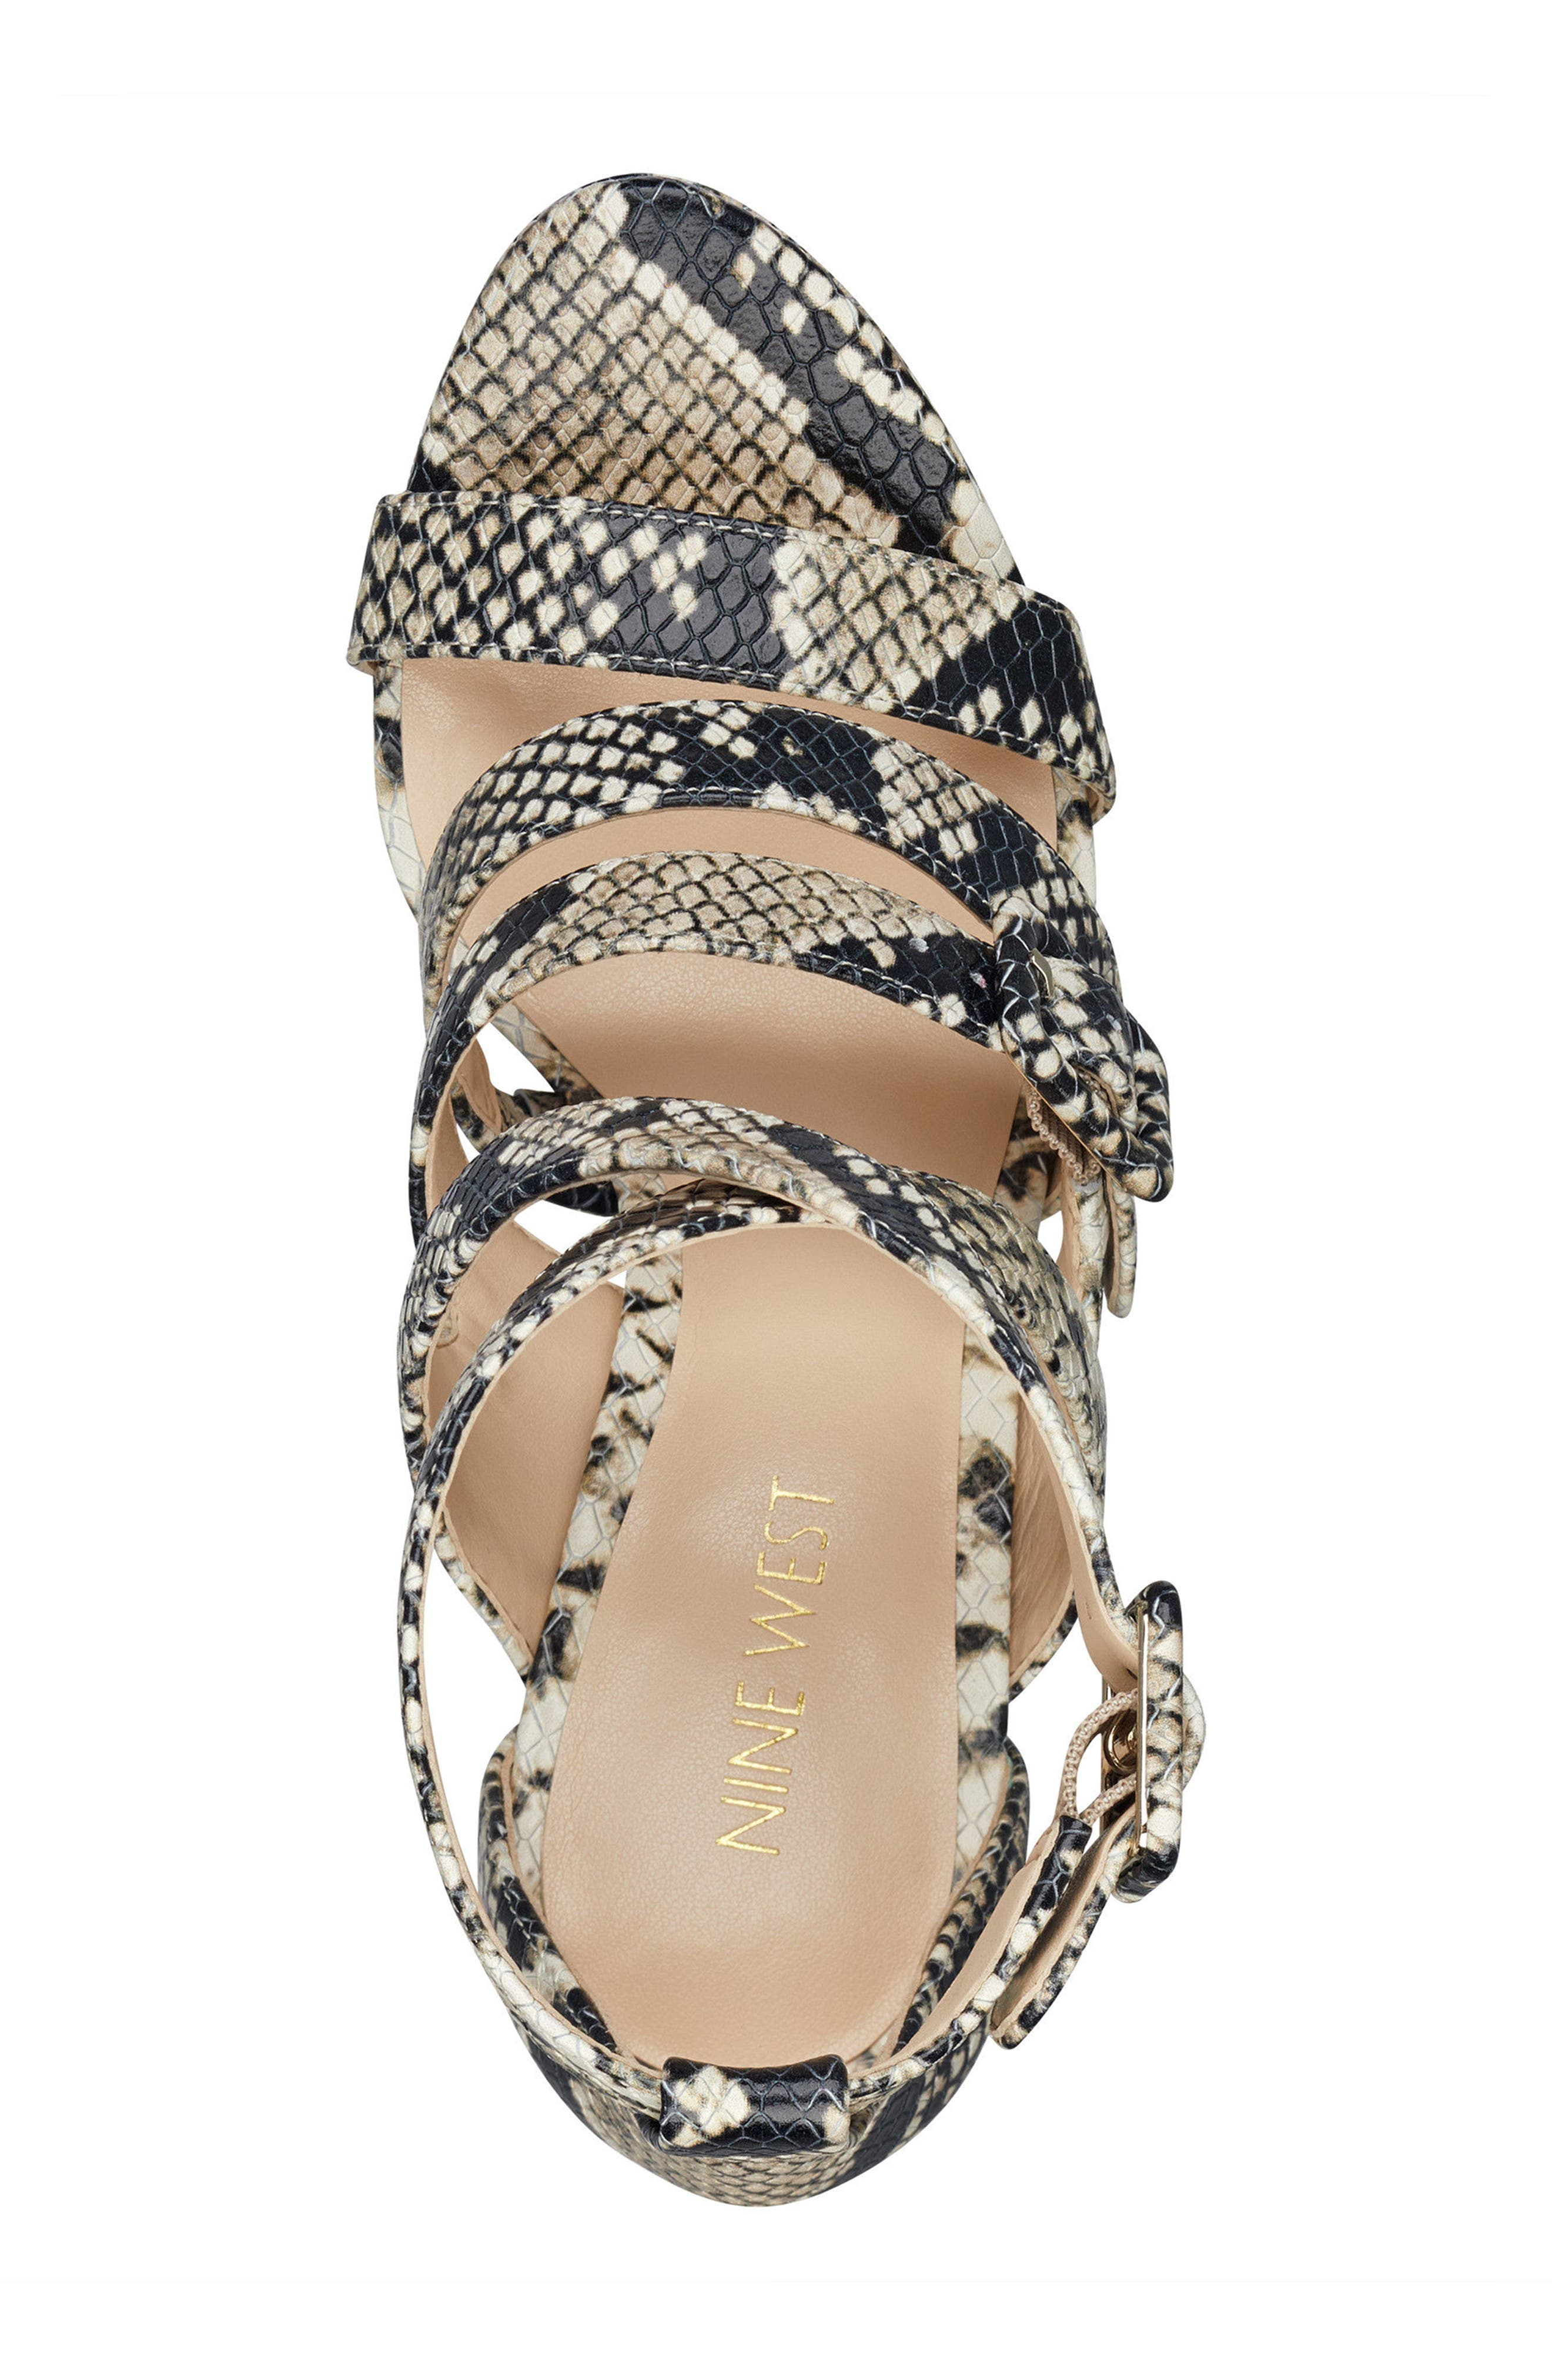 Tarykah Strappy Sandal,                             Alternate thumbnail 5, color,                             100